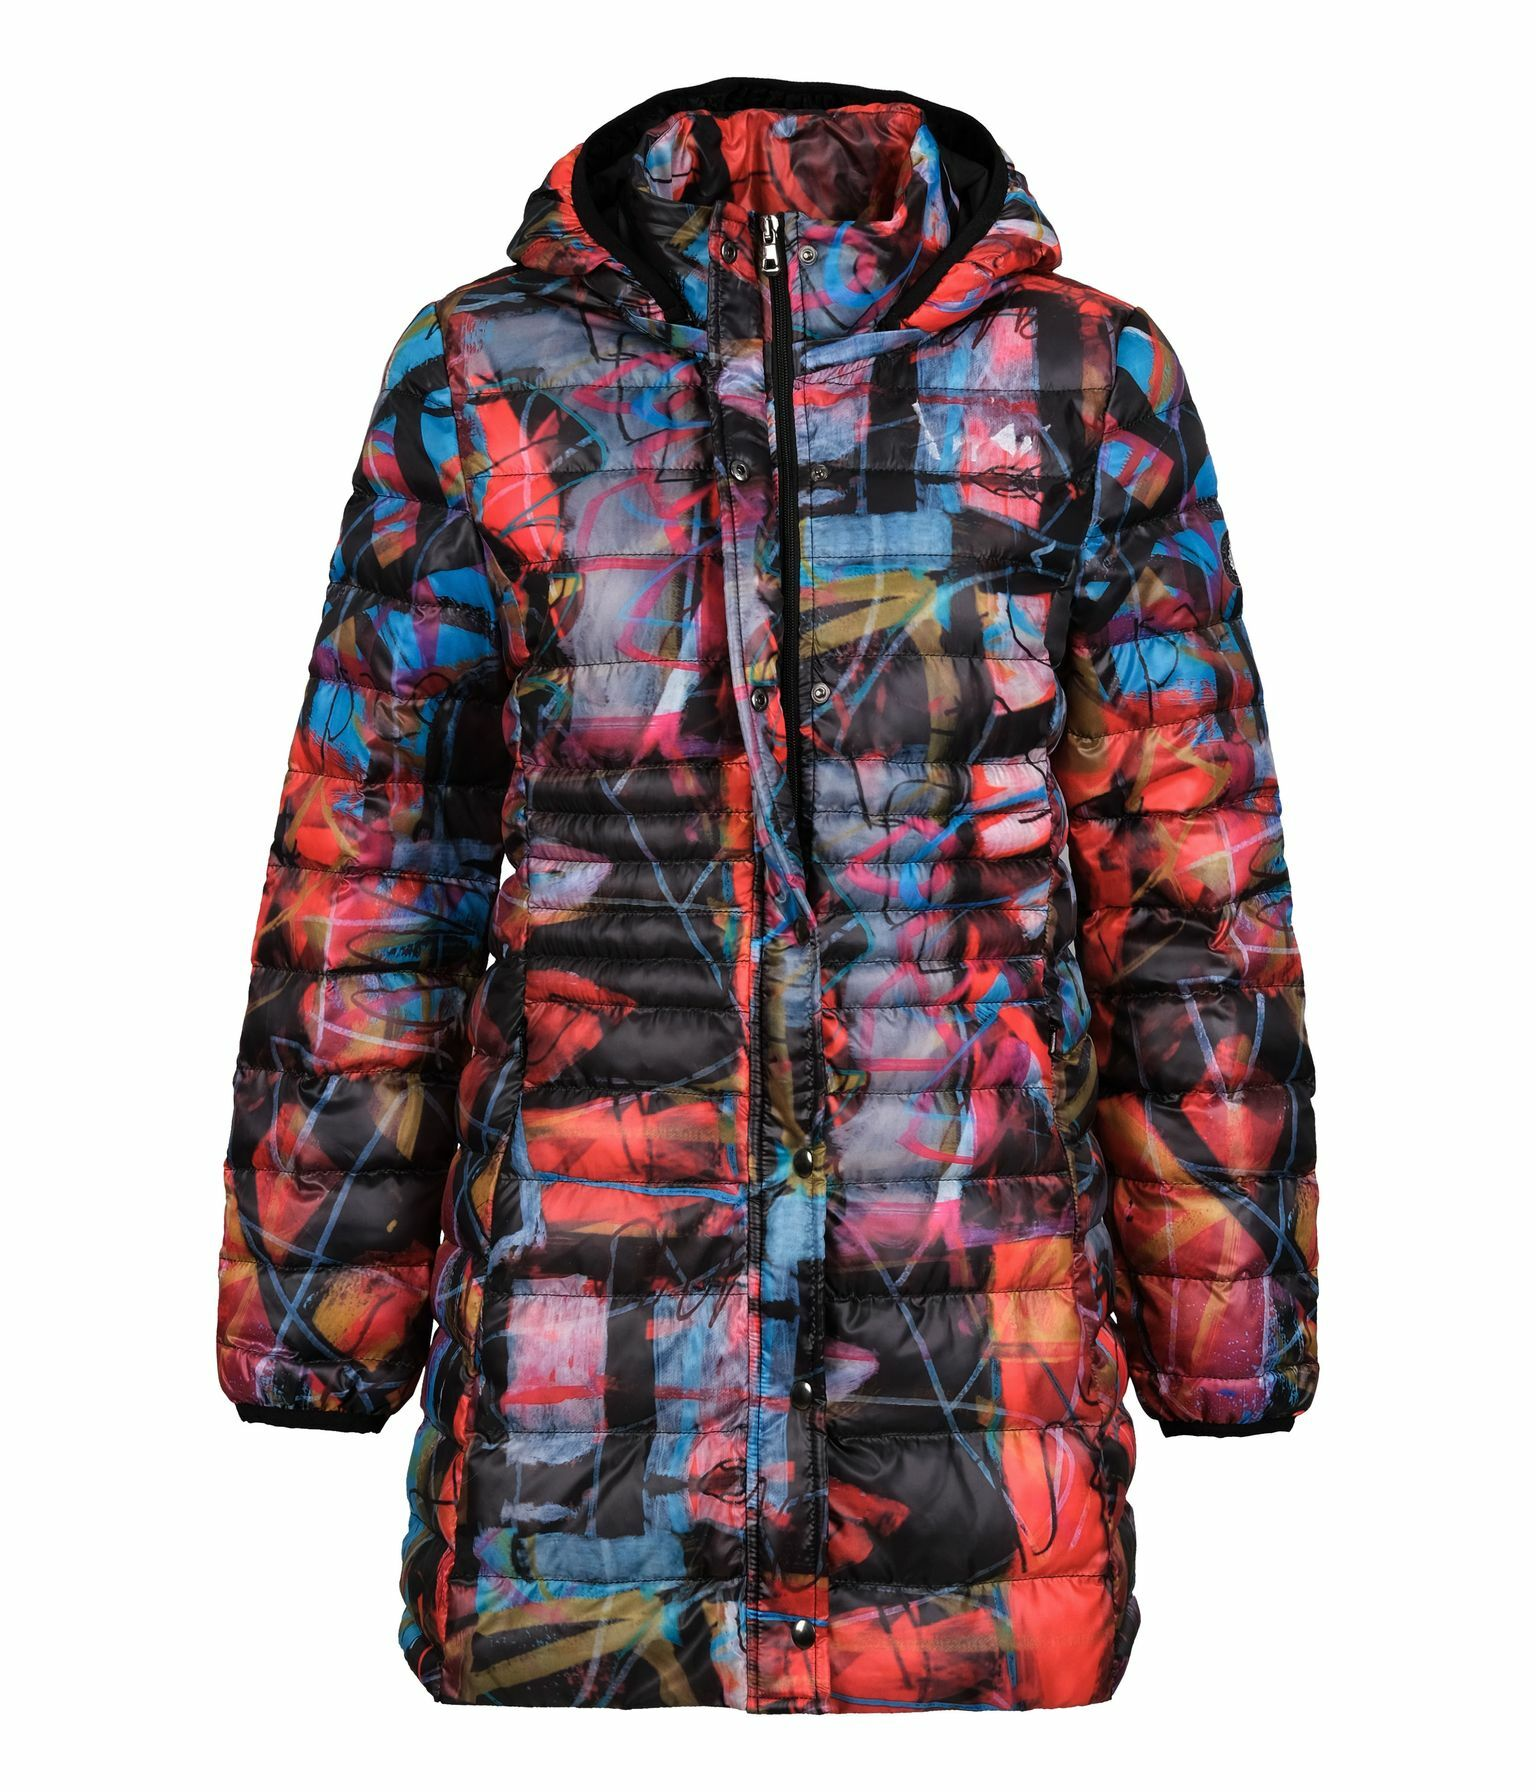 Simply Art Dolcezza: Red 3 Graffiti Abstract Art Coat (Removable Hood!) Dolcezza_Simplyart_70841